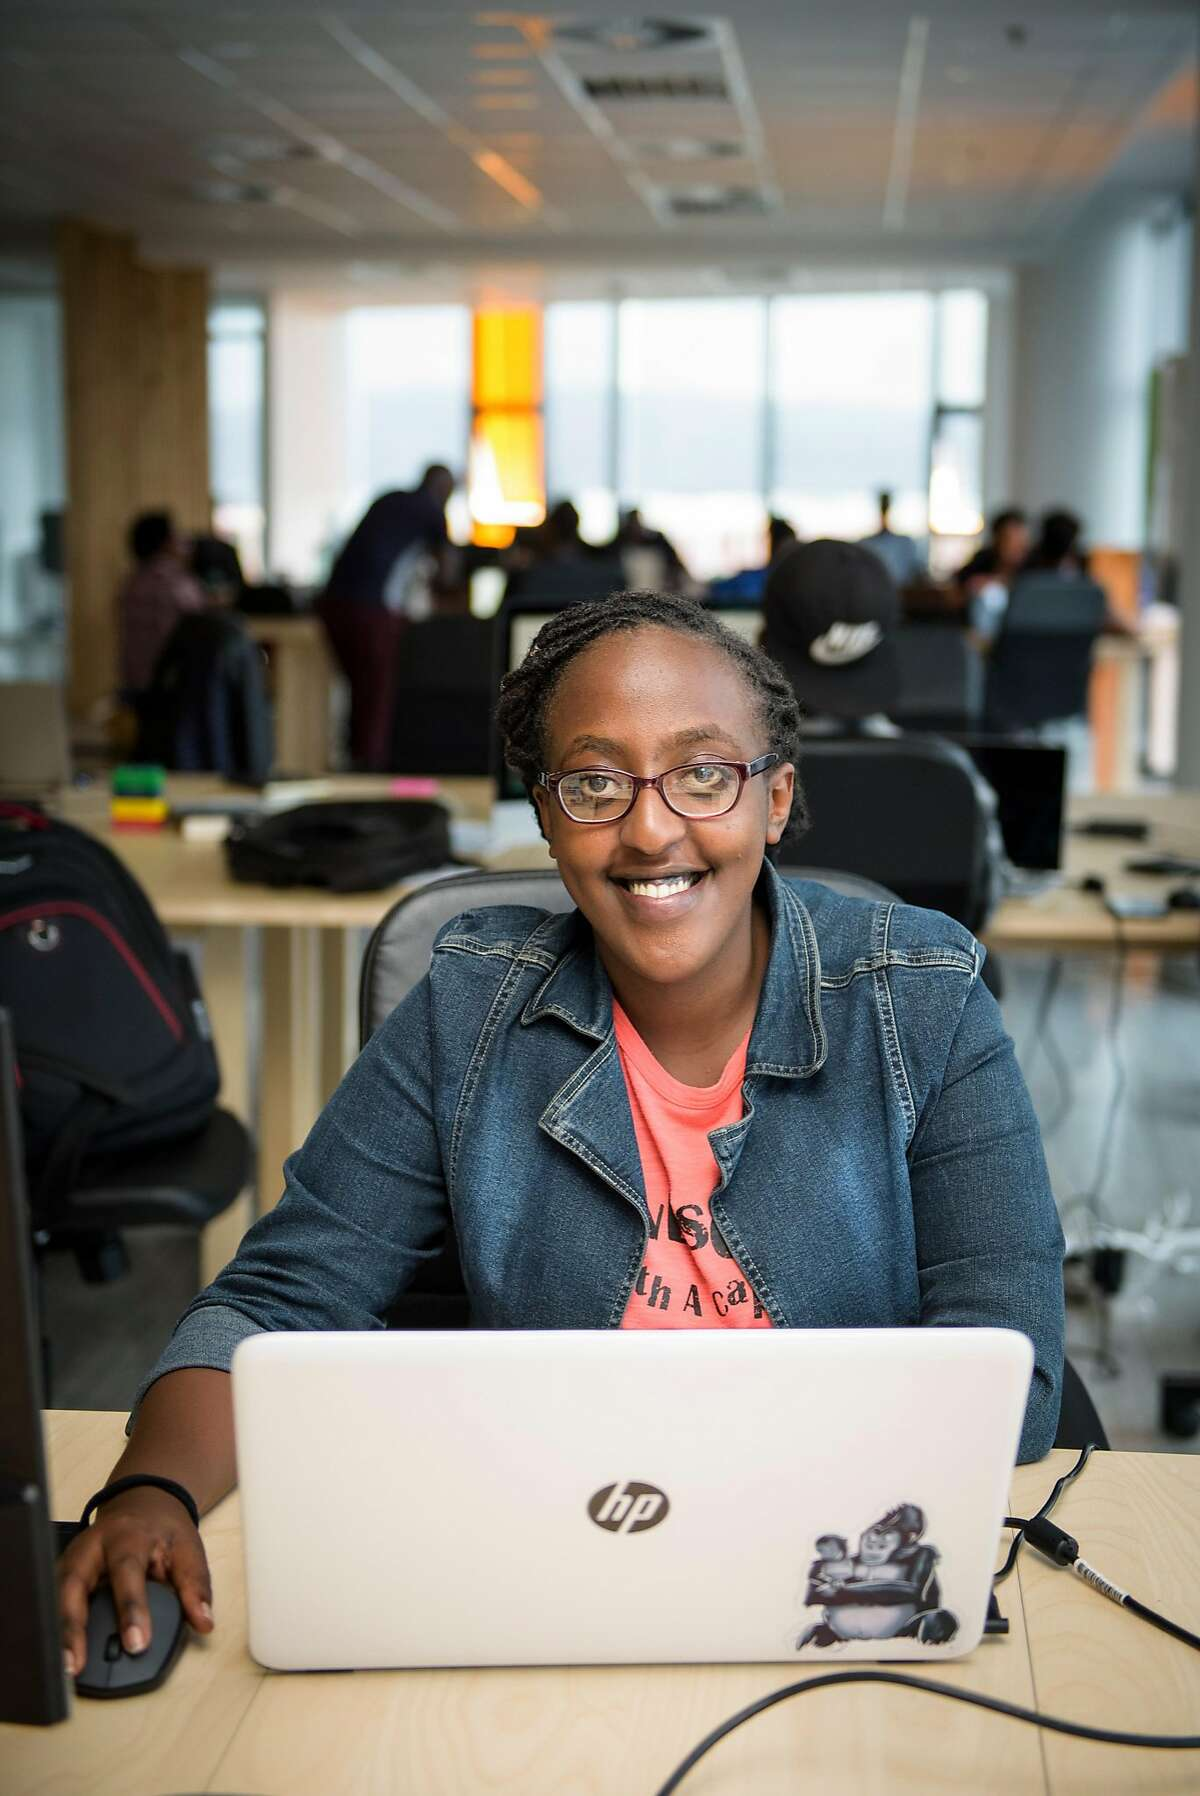 Fileille Naberwe, 20, at DMM Hehe on Nov 17, 2017 in Kigali, Rwanda. She is a dev-opps fellow at DMM Hehe Hehe, formerly known as Hehe Labs. DMM Hehe, formerly known as Hehe Labs on 17 Nov 2017 in Kigali, Rwanda. The start-up seeks to provide young Rwandans with technology skills.